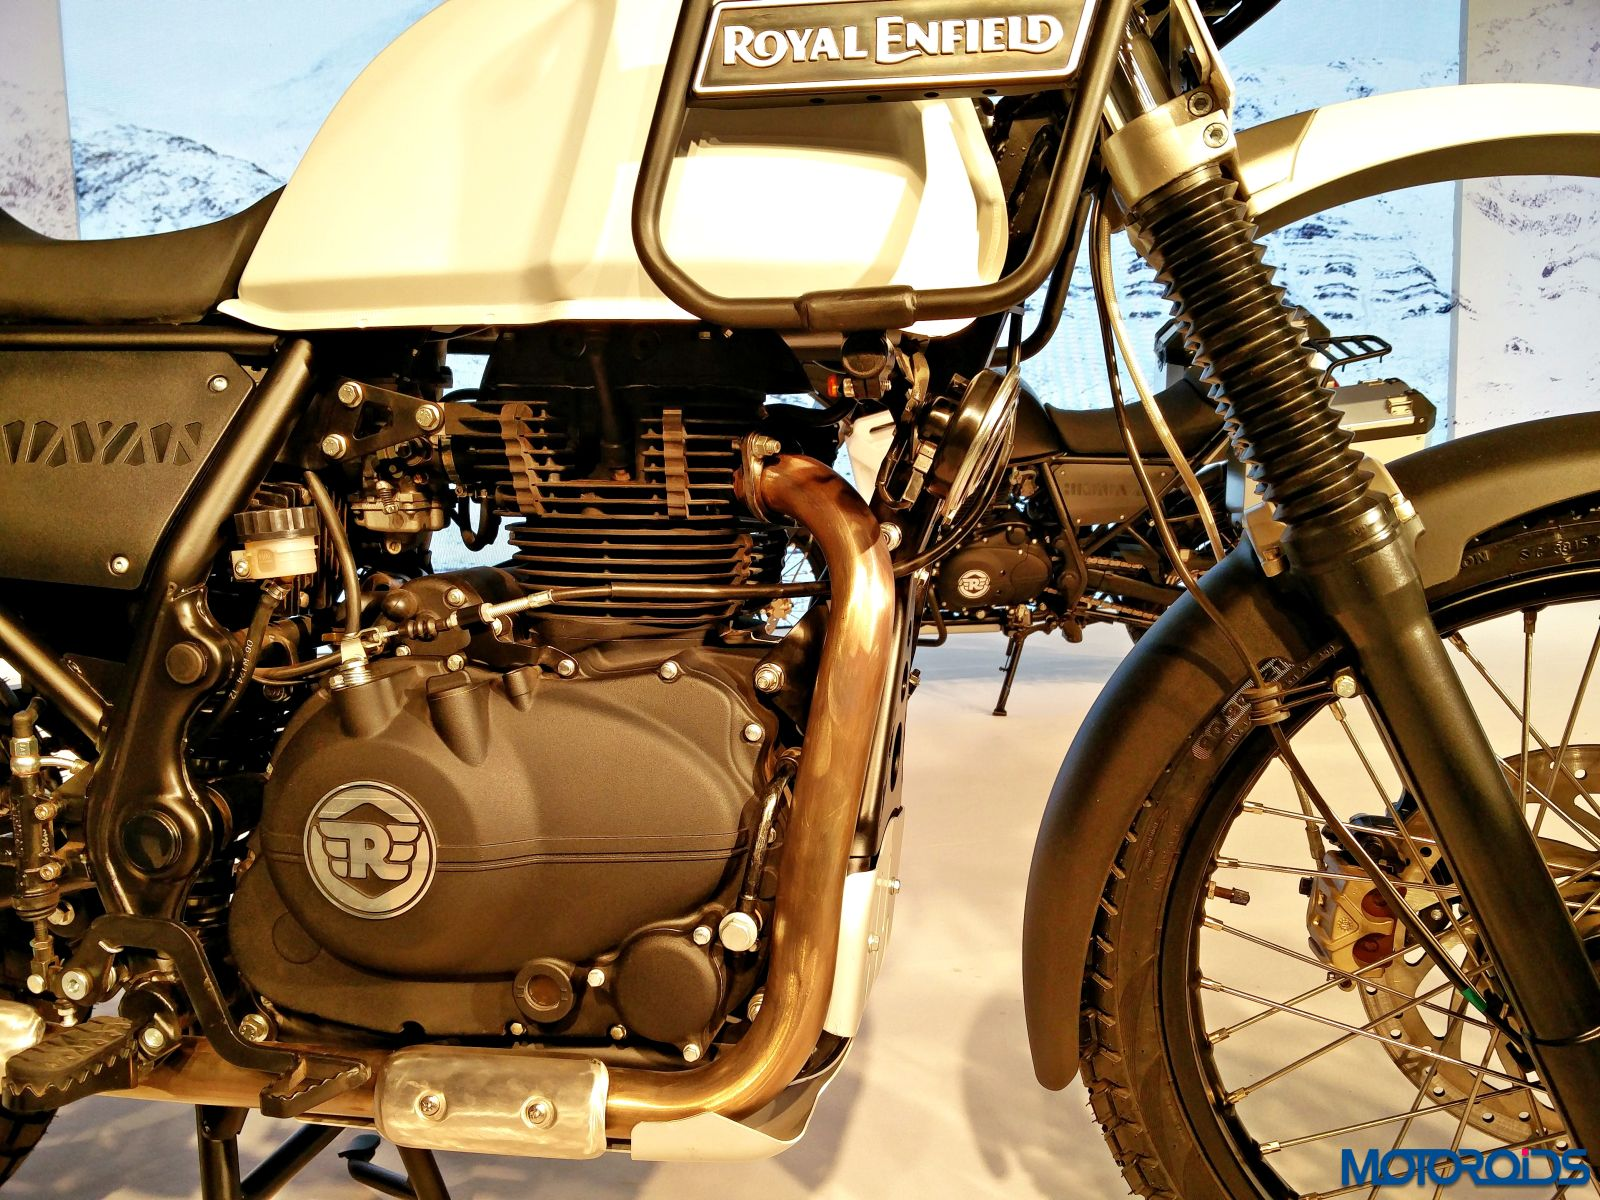 Pin royal enfield classic 350 ash colour screen capture on pinterest - Royal Enfield Will Launch Himalayan Adventure Motorcycle